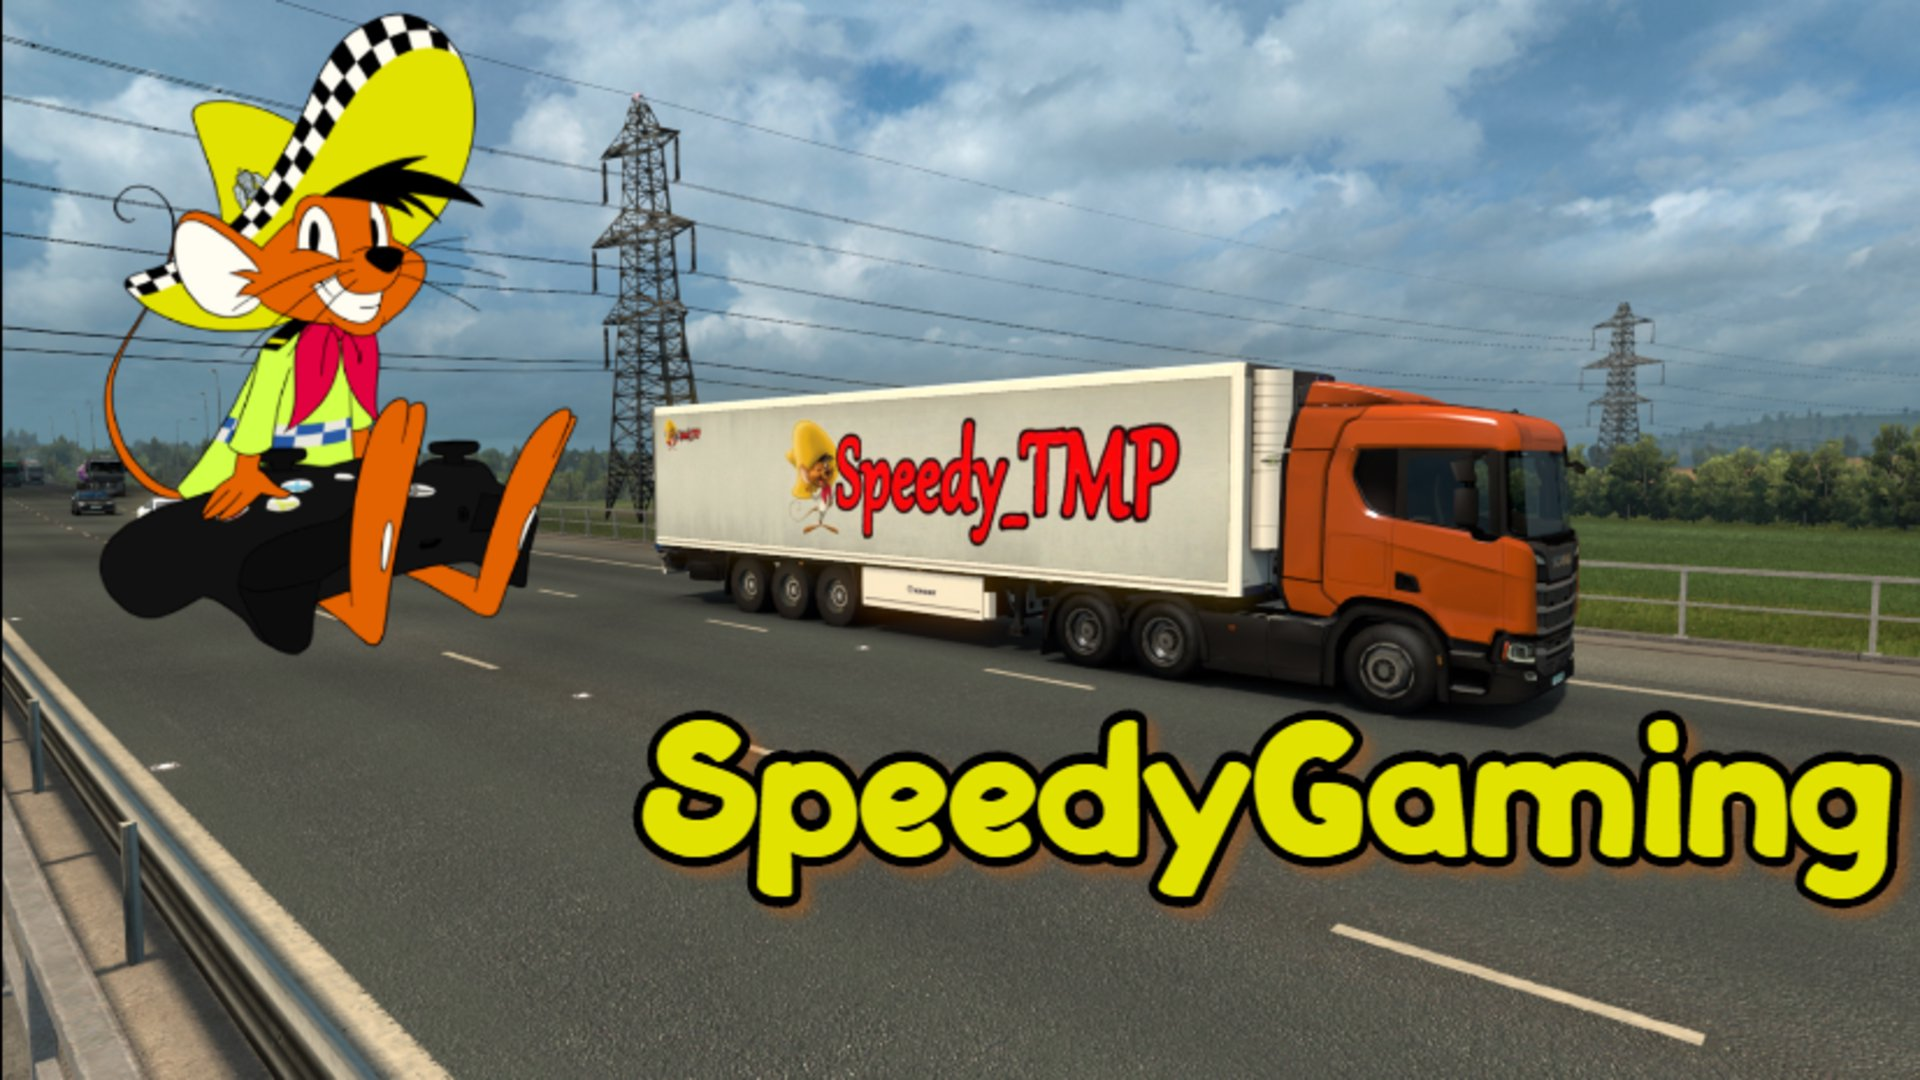 Speedy_TMP